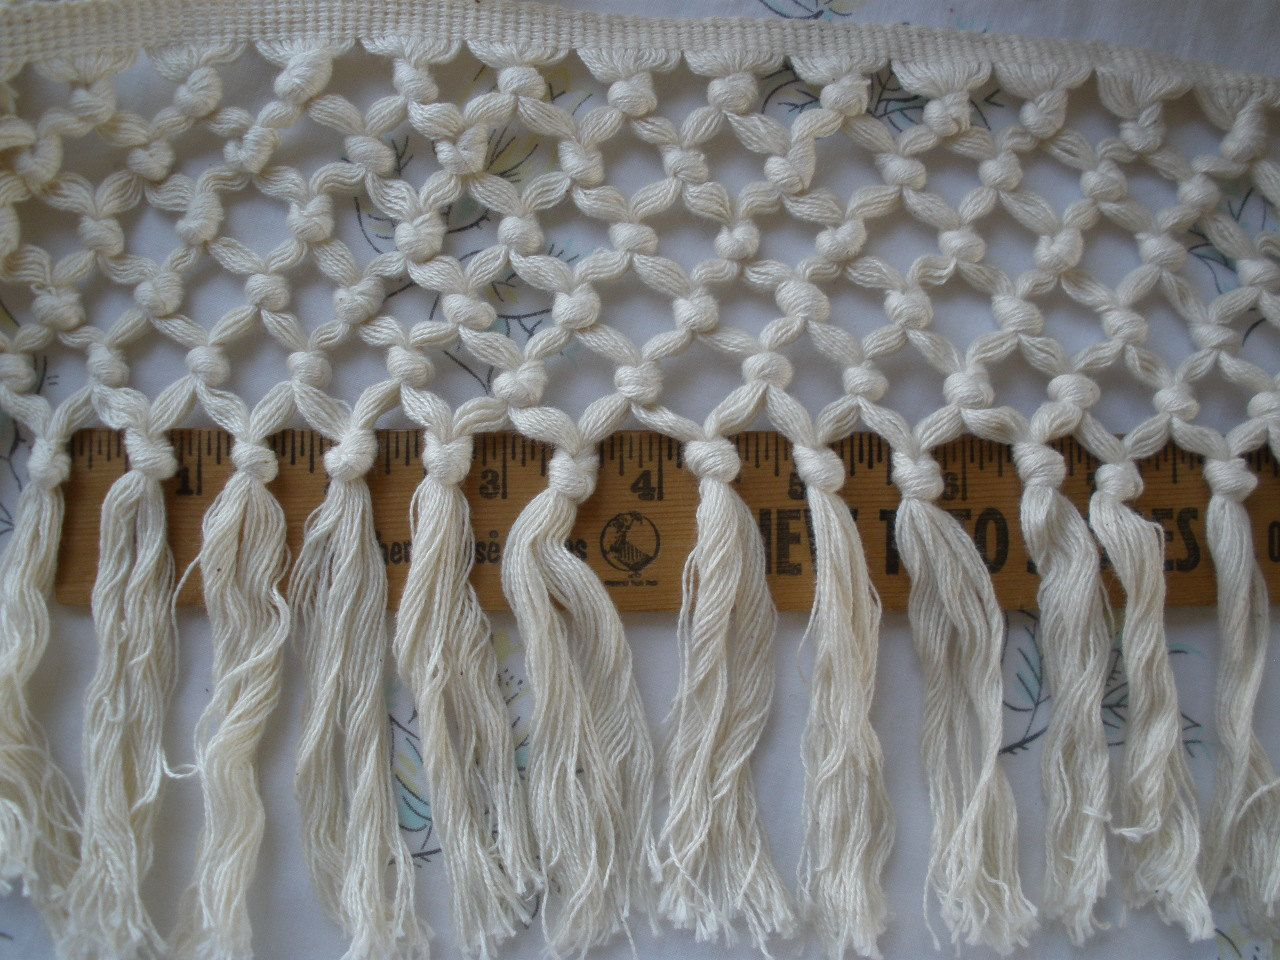 Boho Macrame Fringe Trim 6 Wide Cotton Blend Knotted   Etsy Inside 2017 Blended Fabric Fringed Design Woven With Rod (View 5 of 20)